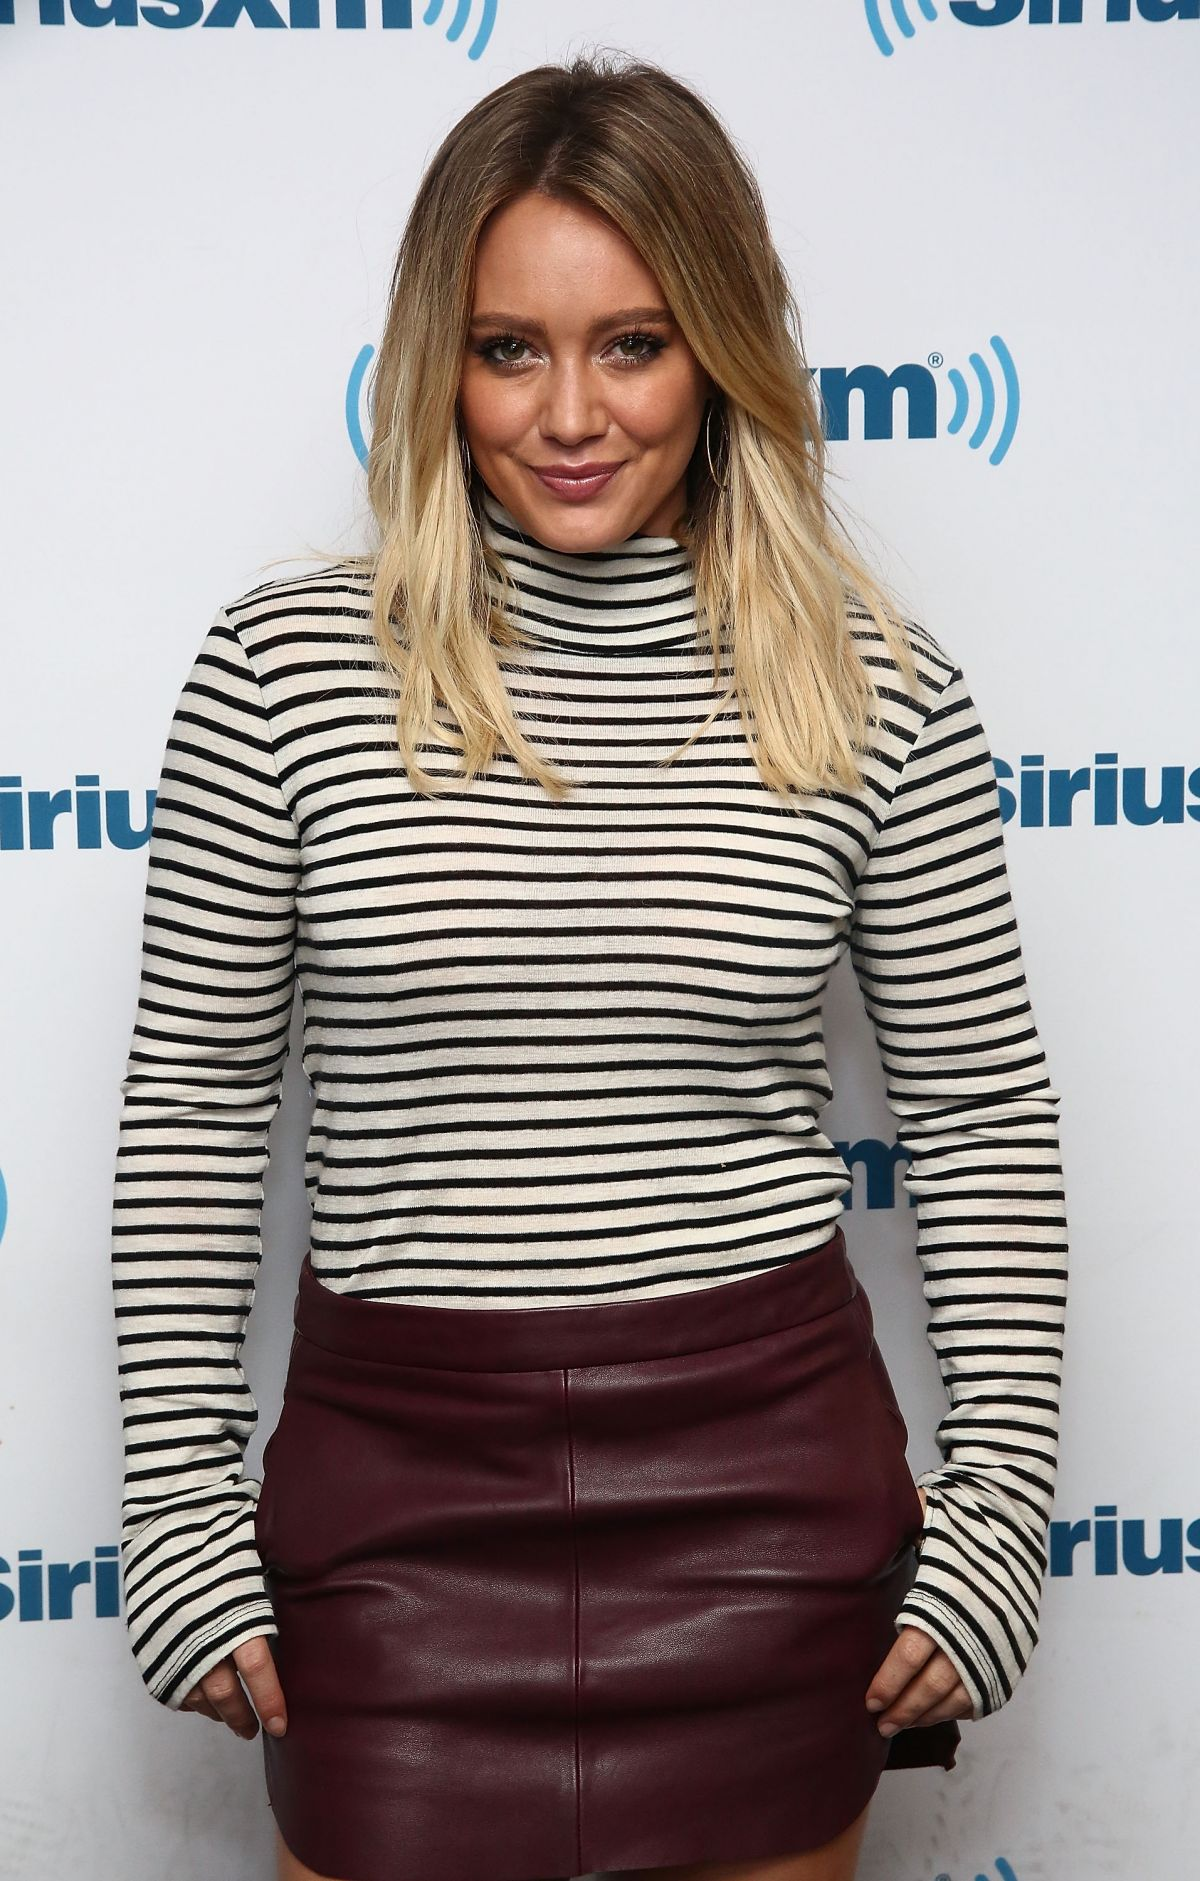 HILARY DUFF at SiriusX...